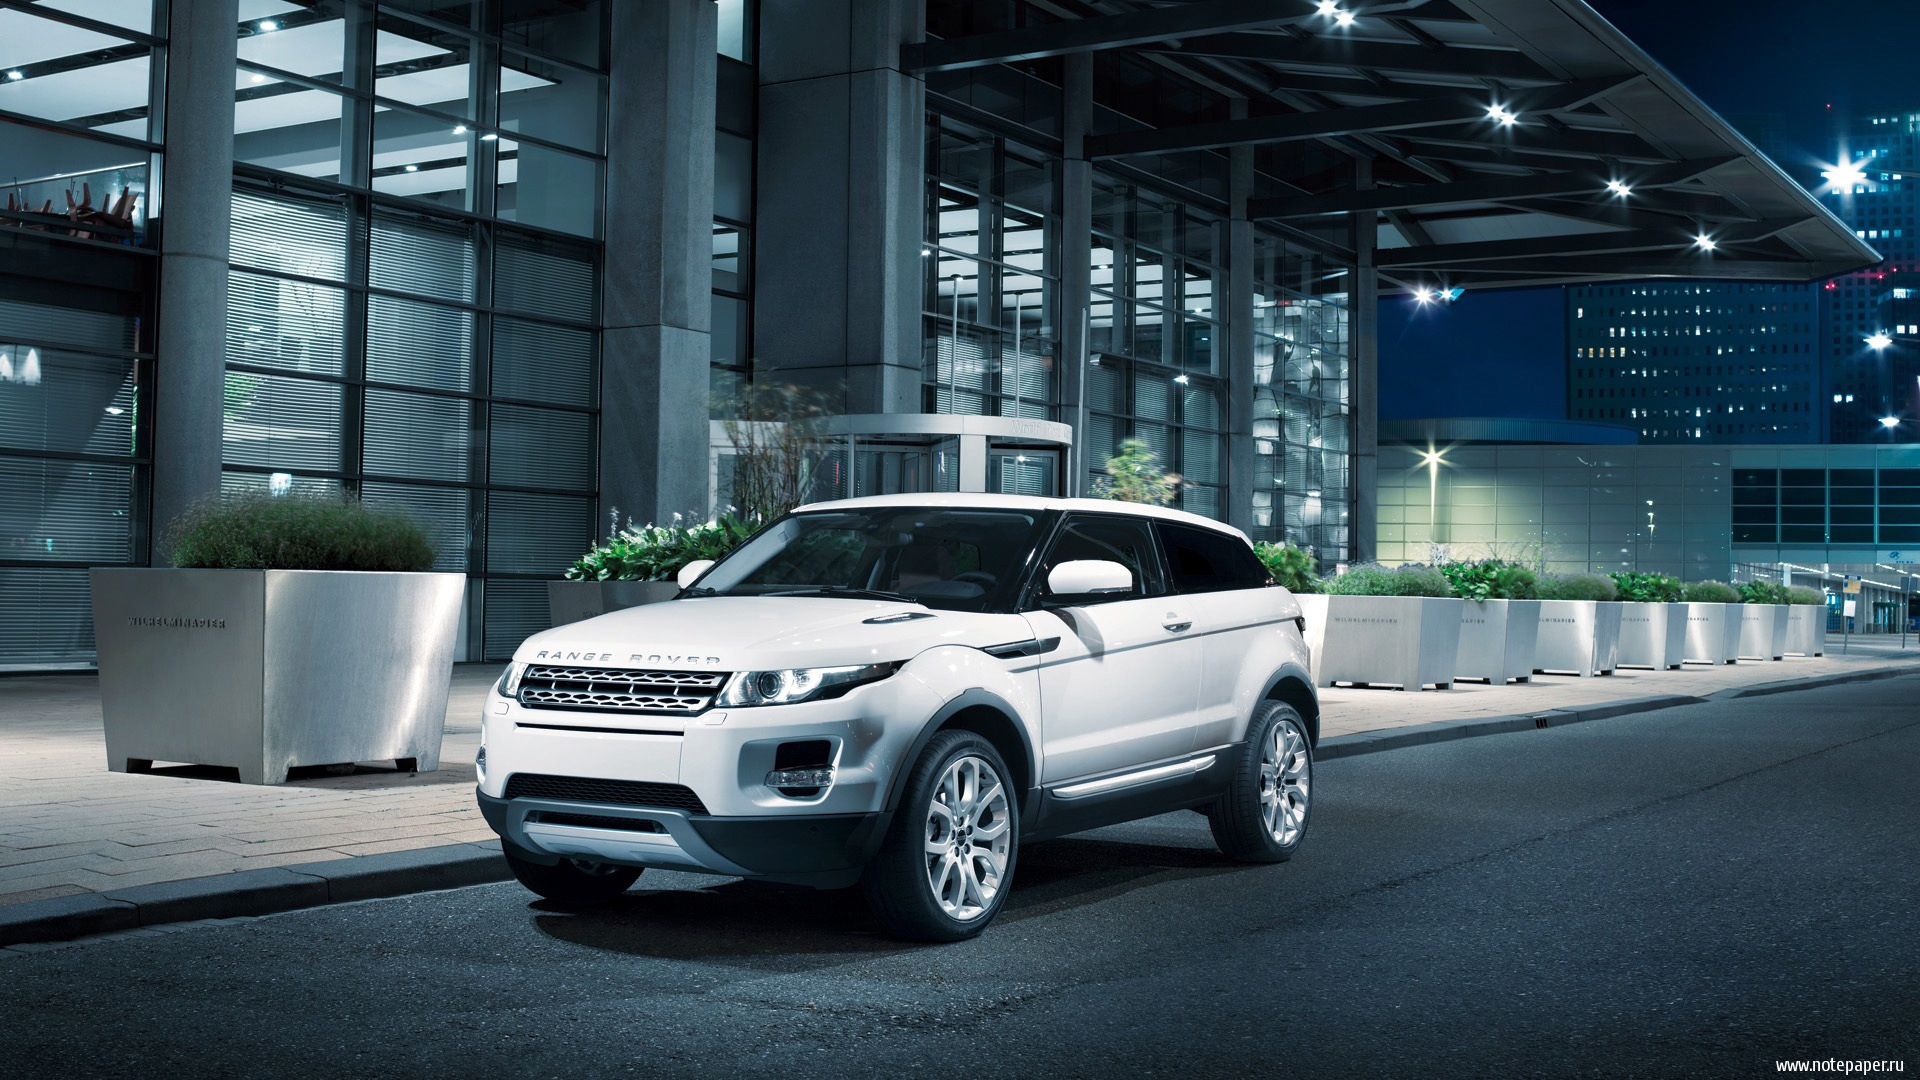 Range Rover Evoque Picture HD Wallpaper